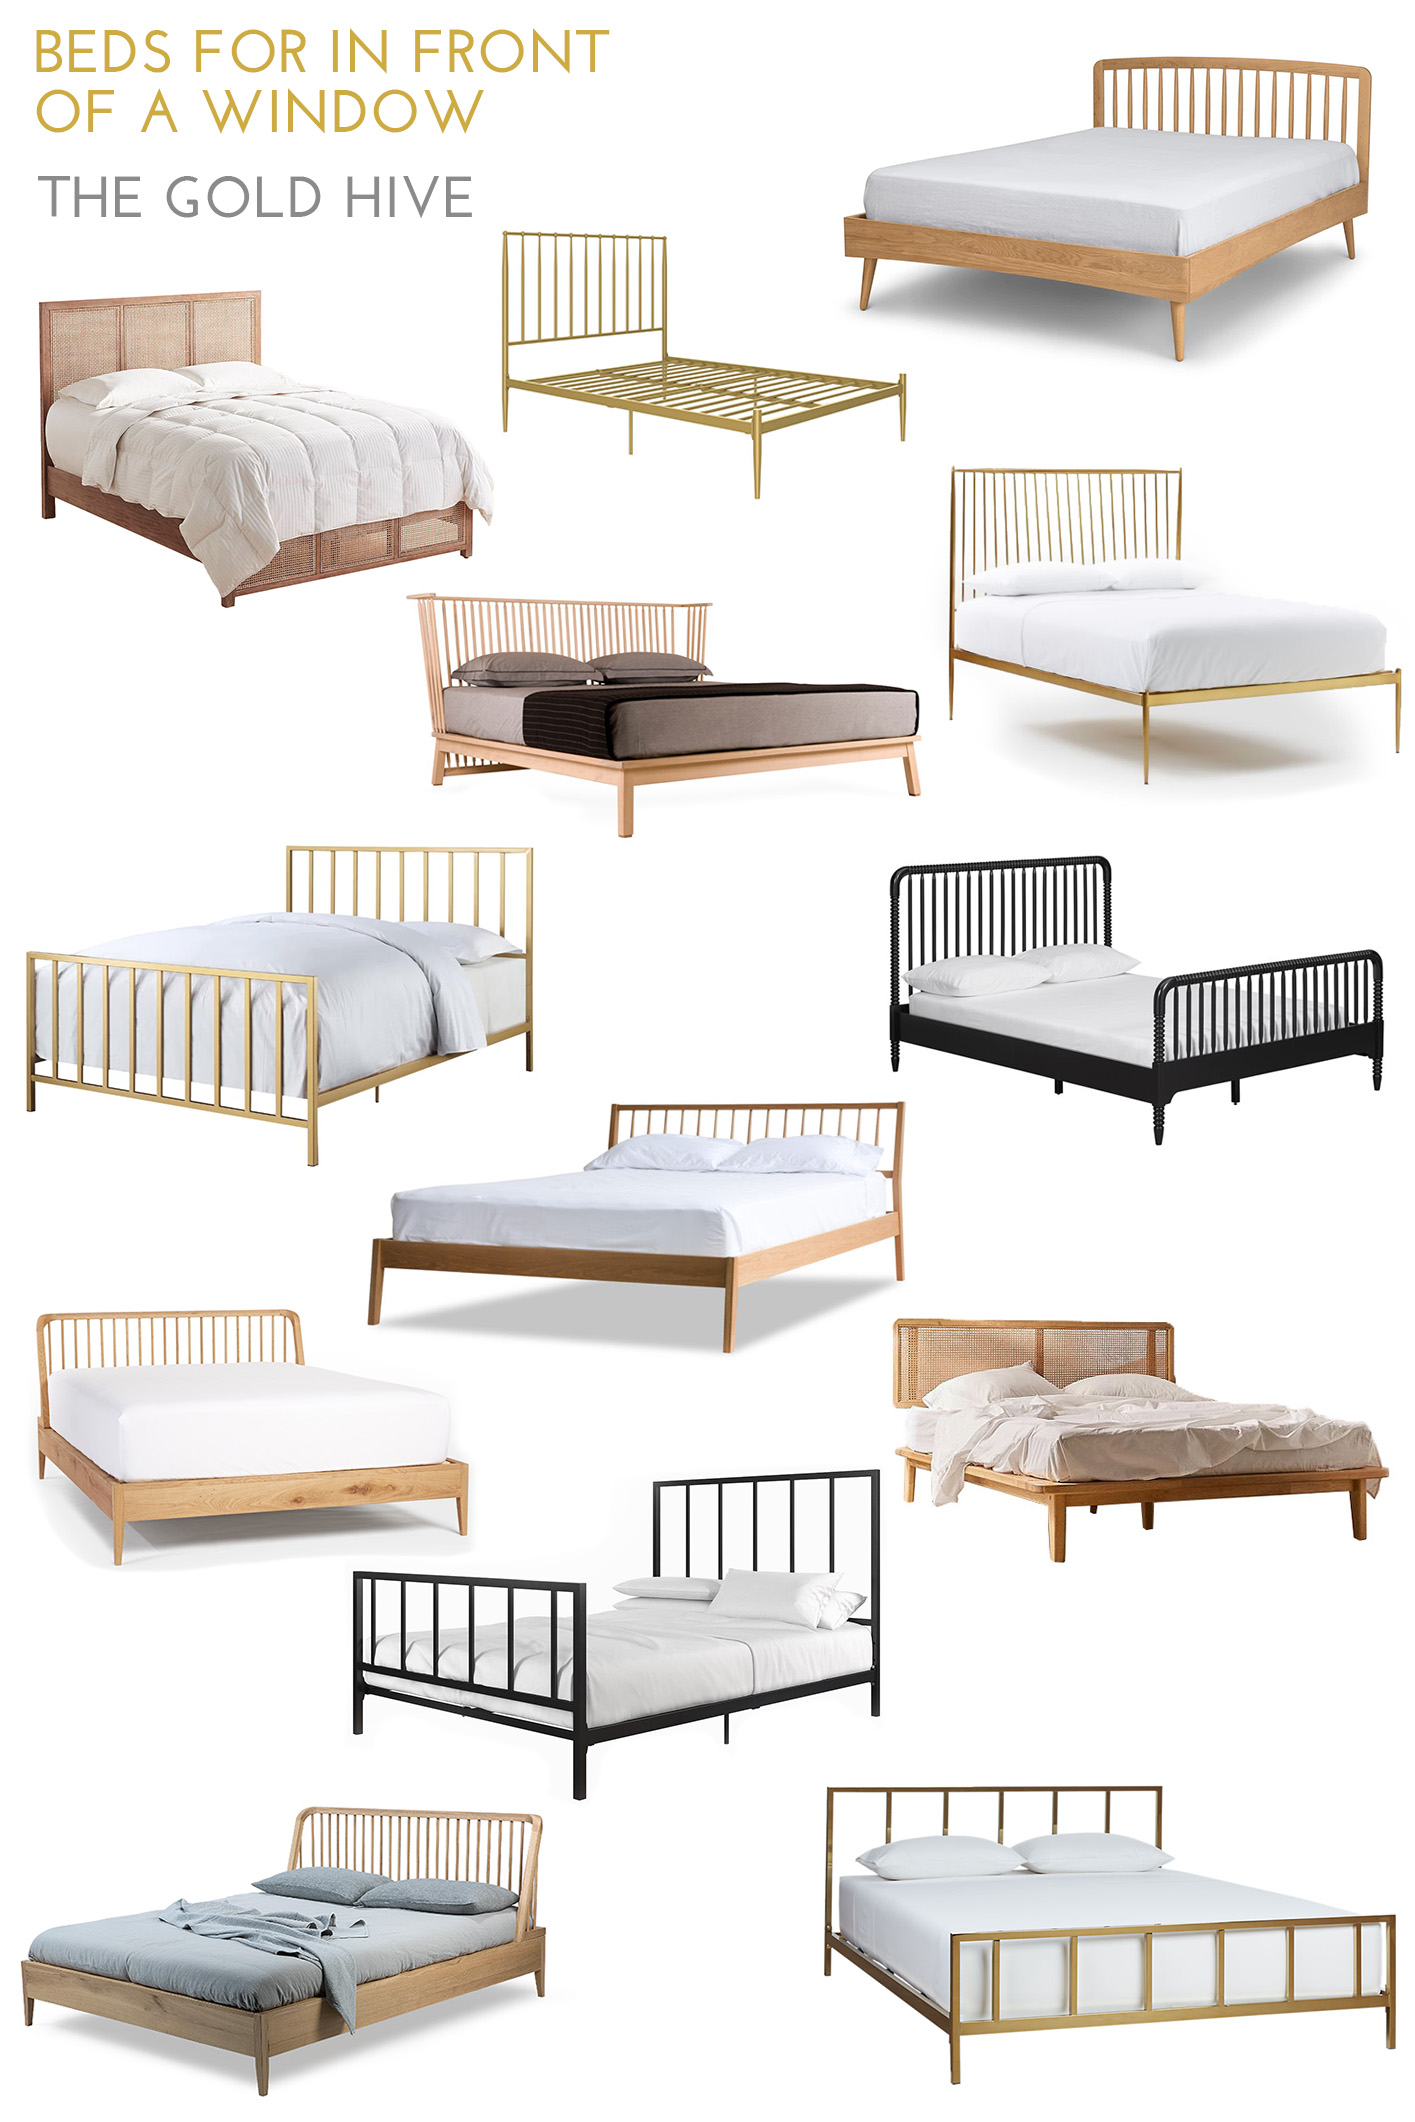 Beds to put in front of a window.jpg